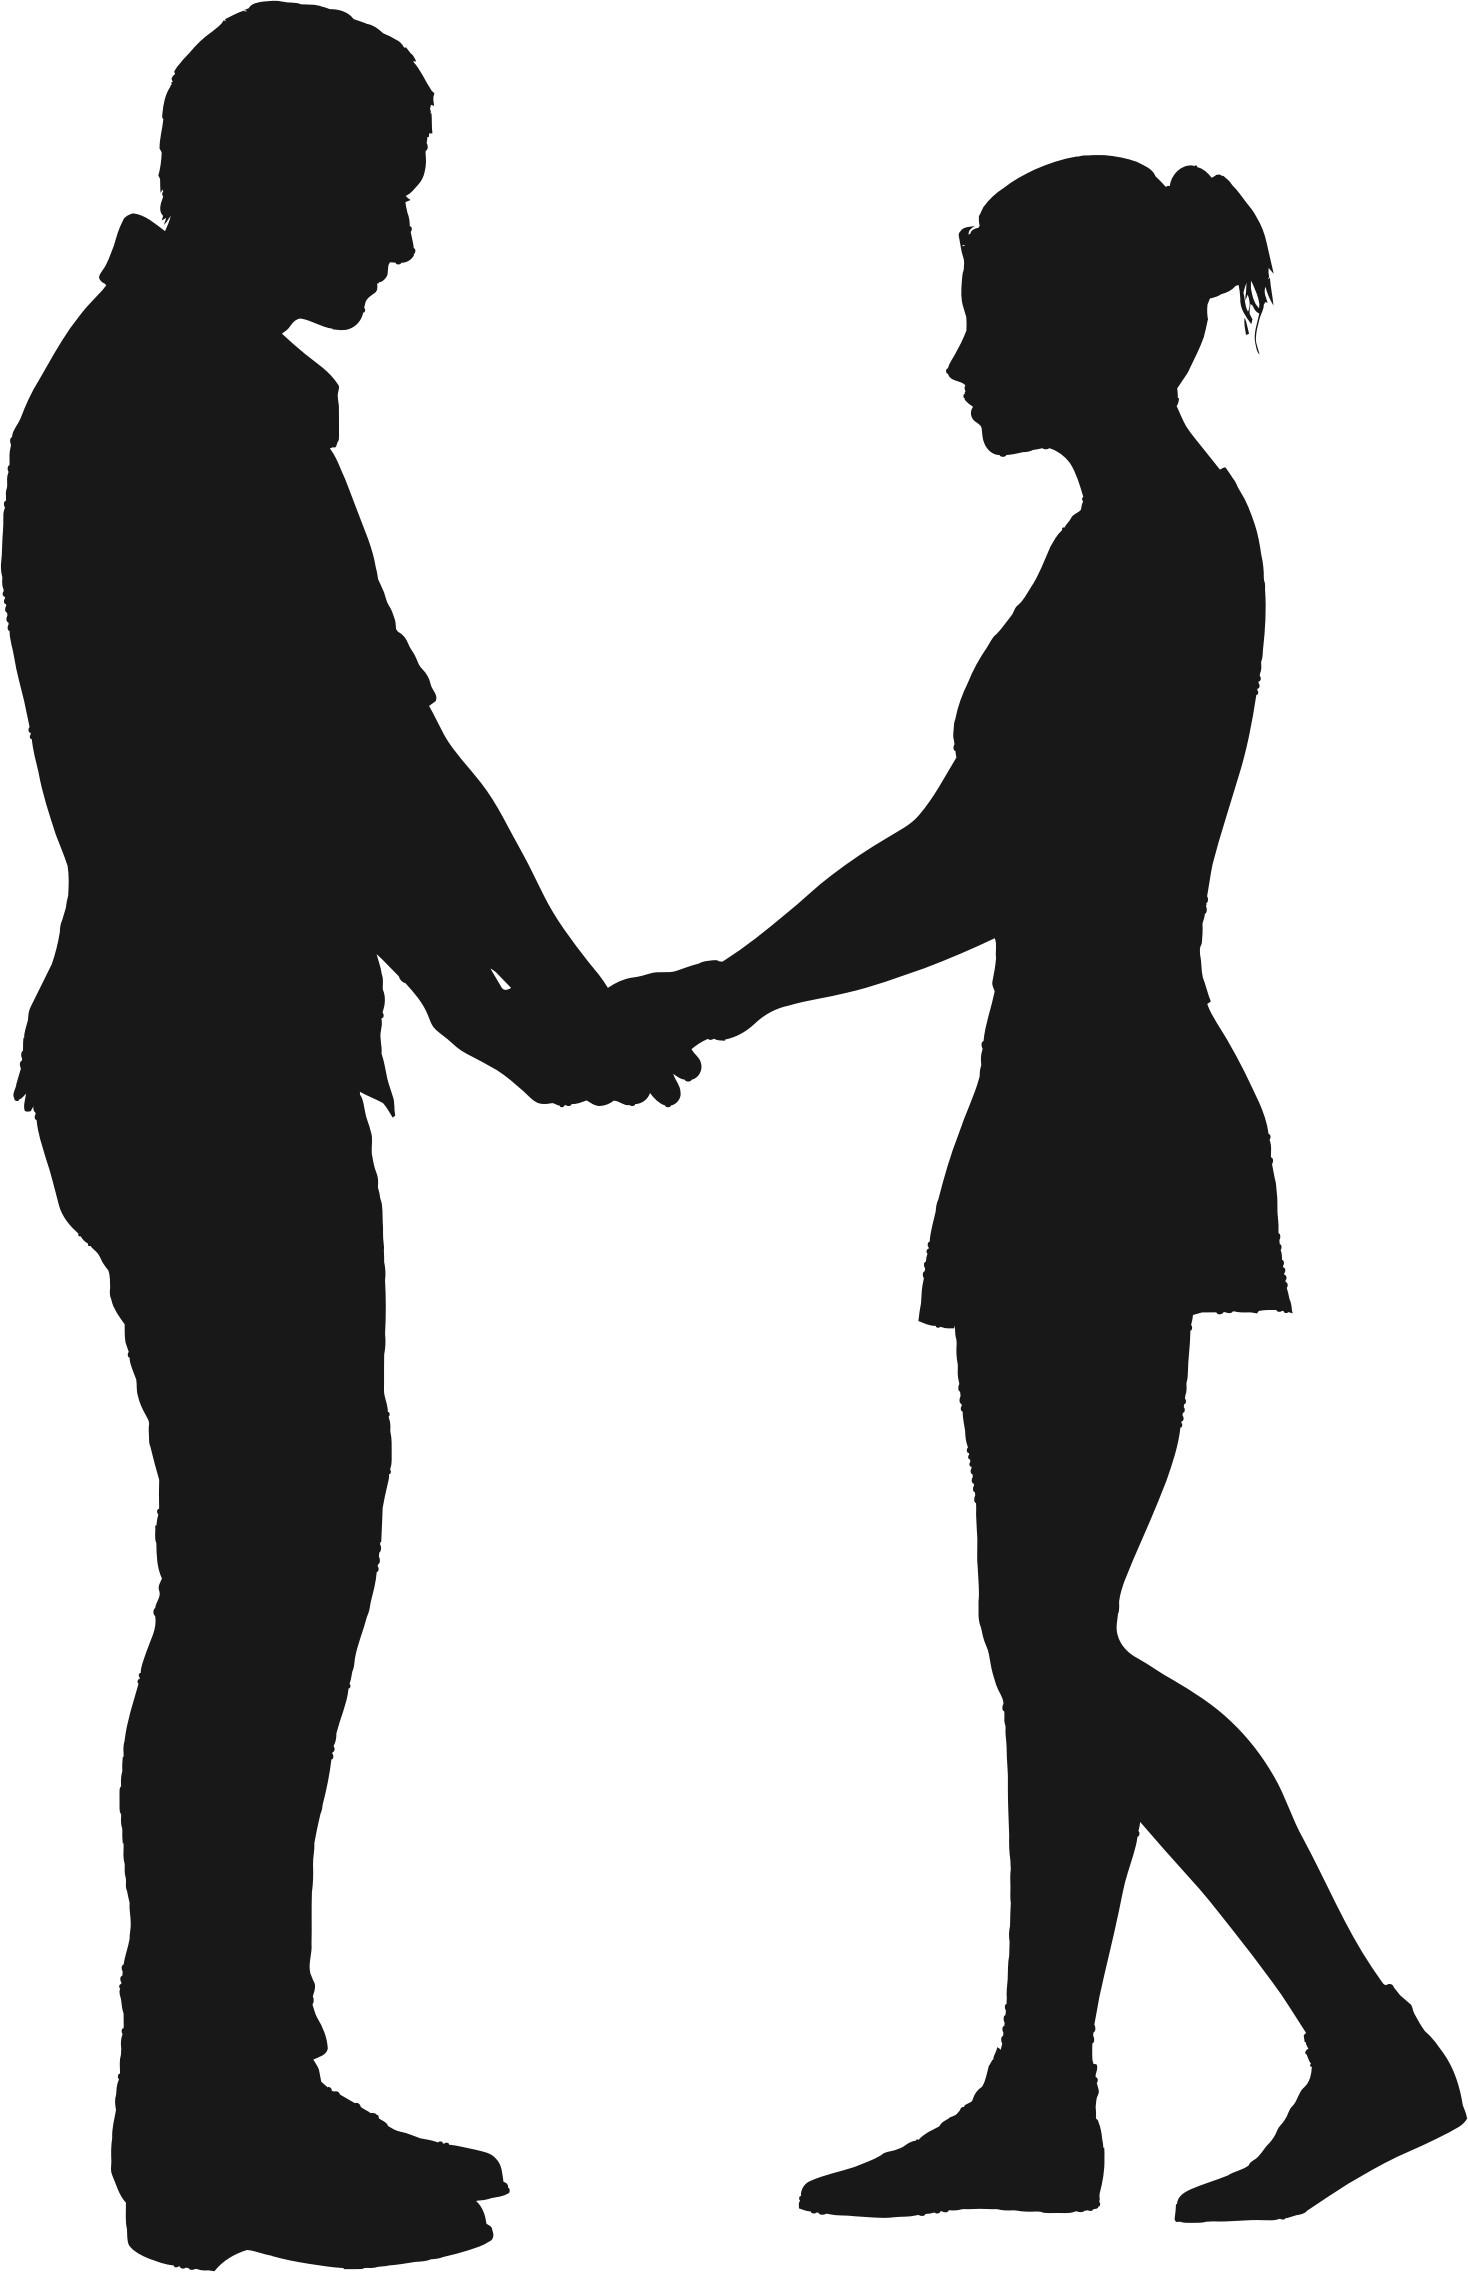 Couple Silhouette 6 by GDJ